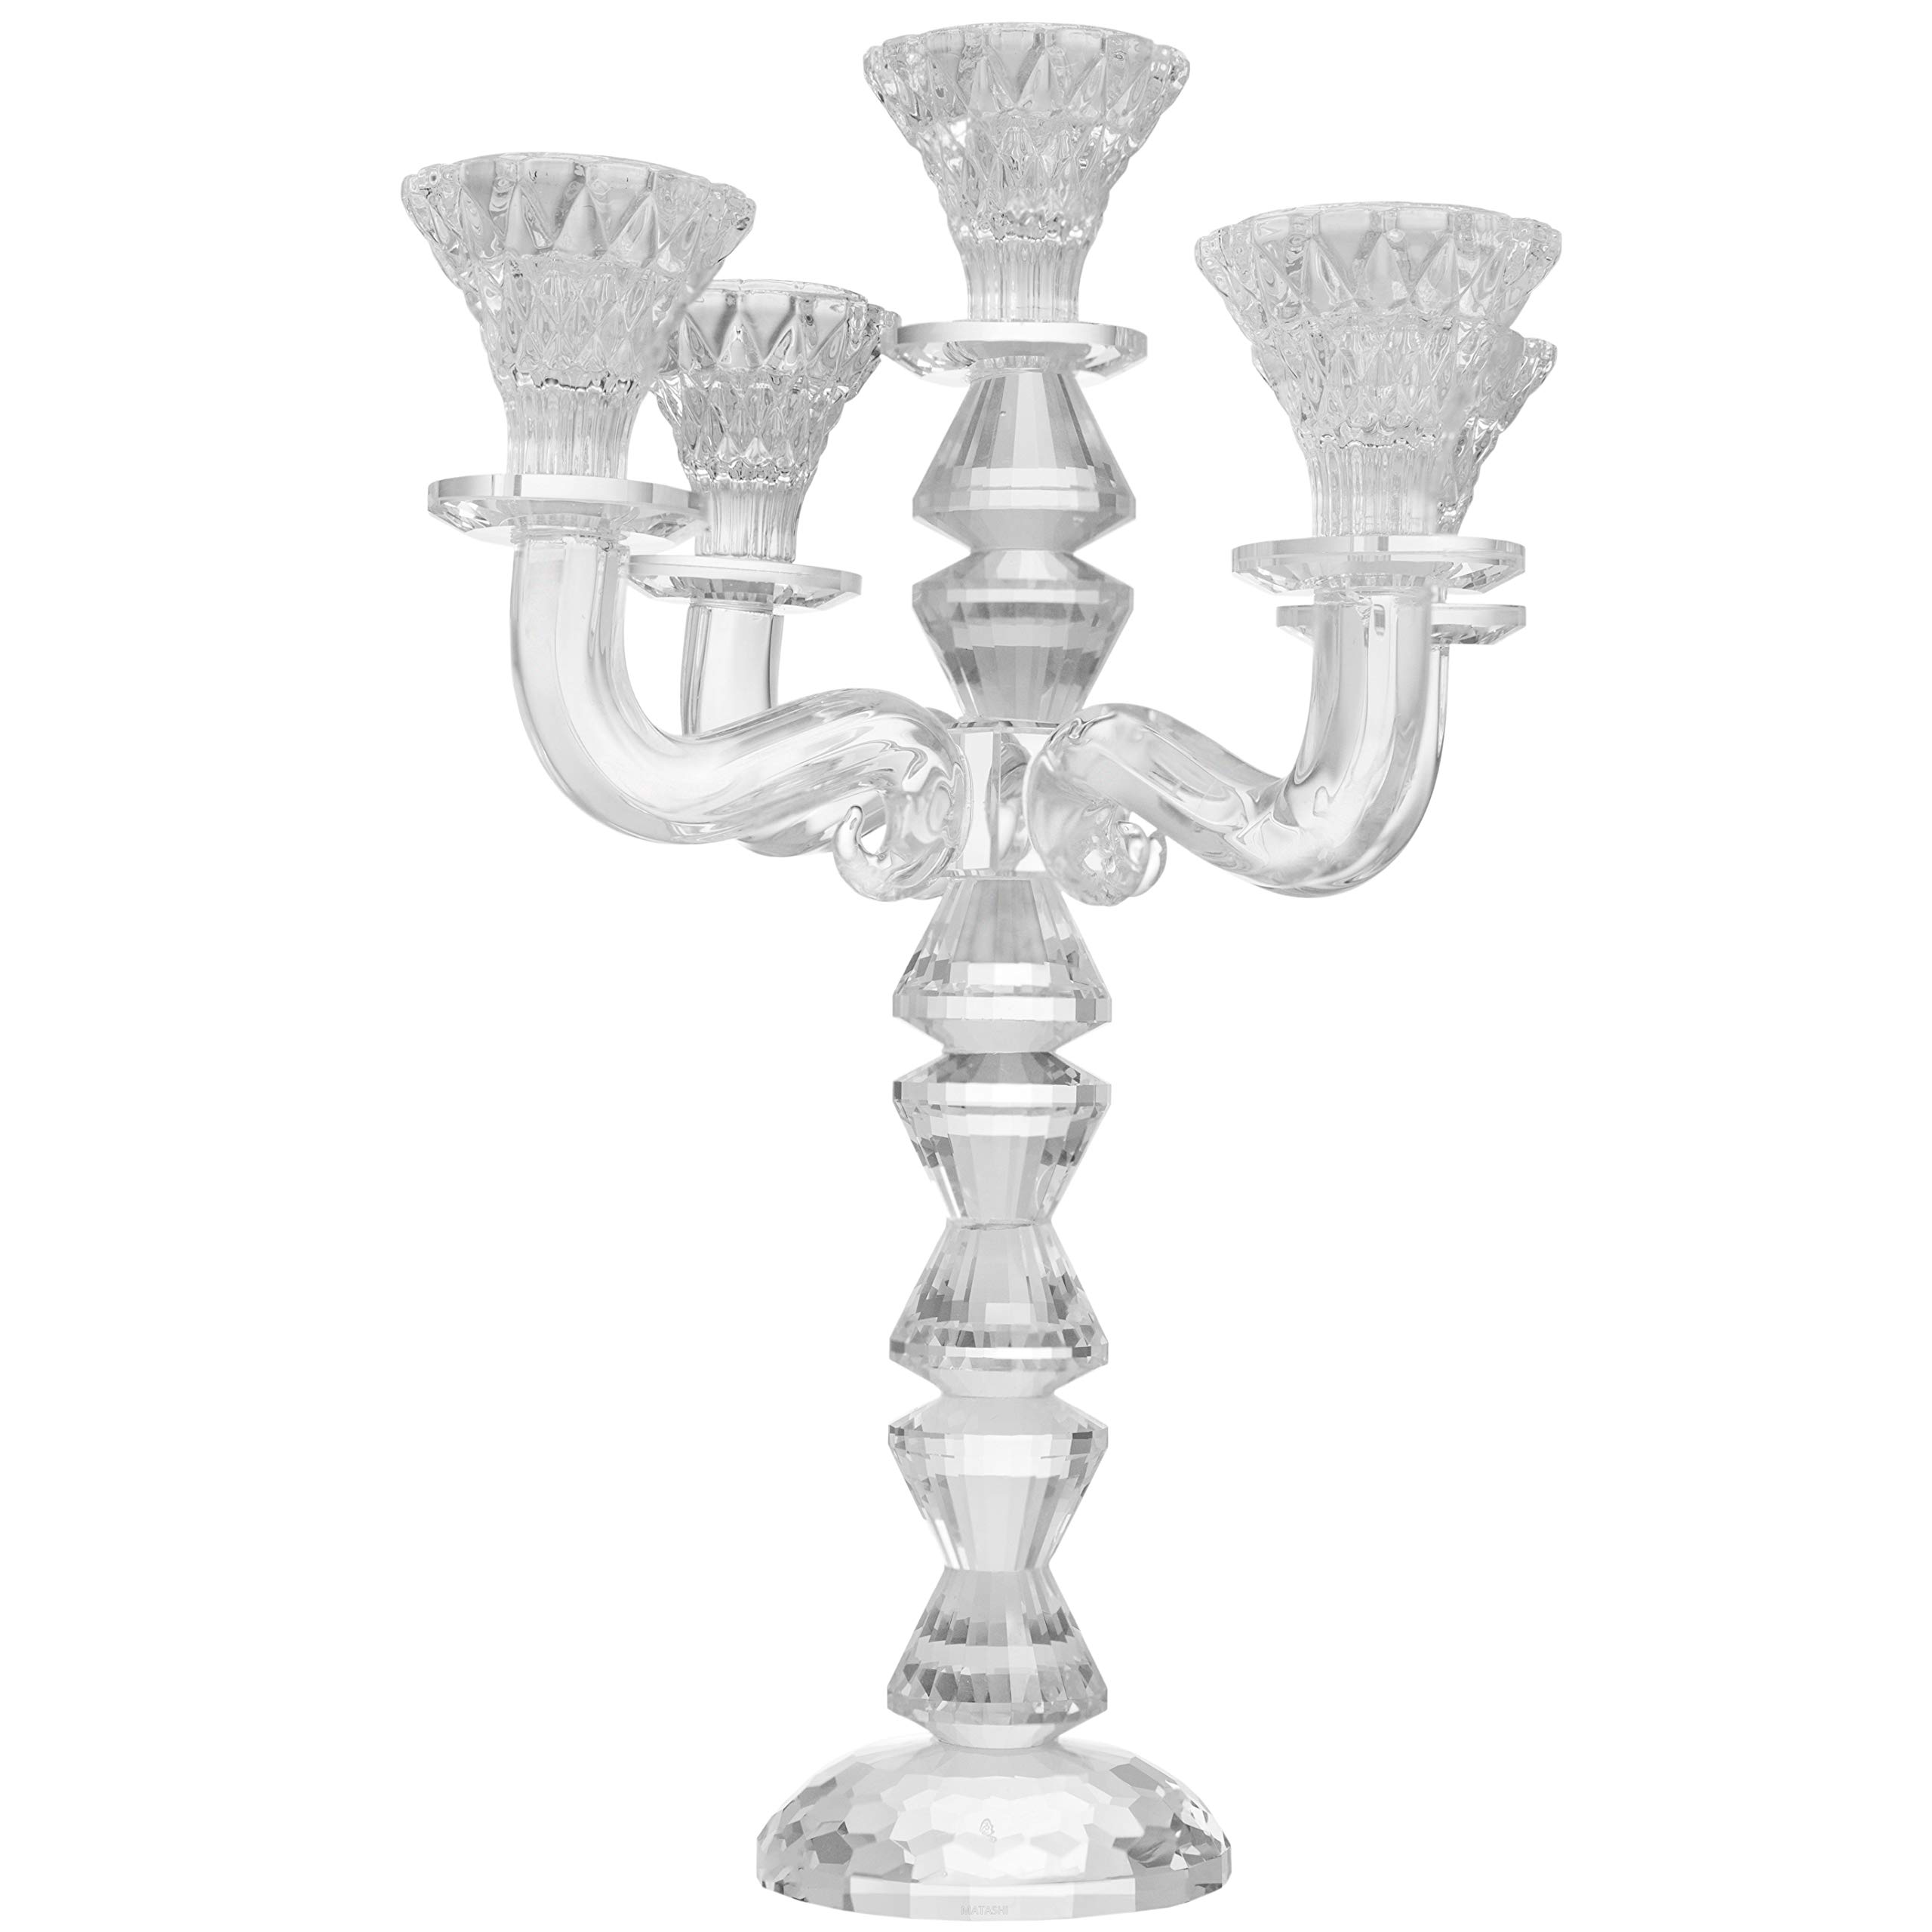 Matashi Crystal Candelabra Candlestick Holder Elegant Glass Table Top Decoration and Home Décor Piece | Kitchen, Dining Room, or Living Space (5 Stick Candelabra)